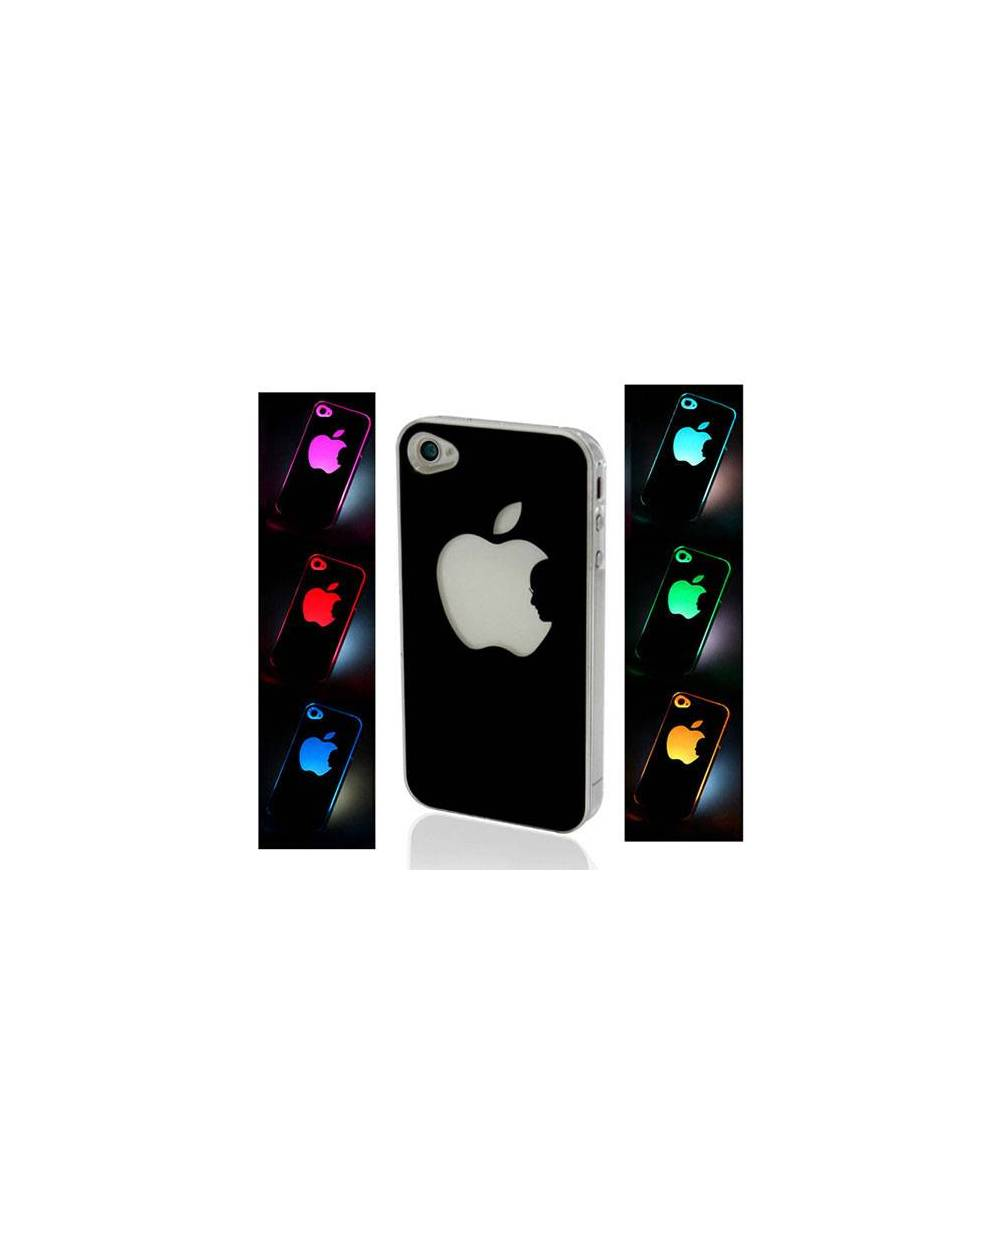 coque lumineuse pour iphone 4 ou 5 la pomme d 39 apple s 39 illumine heart jacking. Black Bedroom Furniture Sets. Home Design Ideas